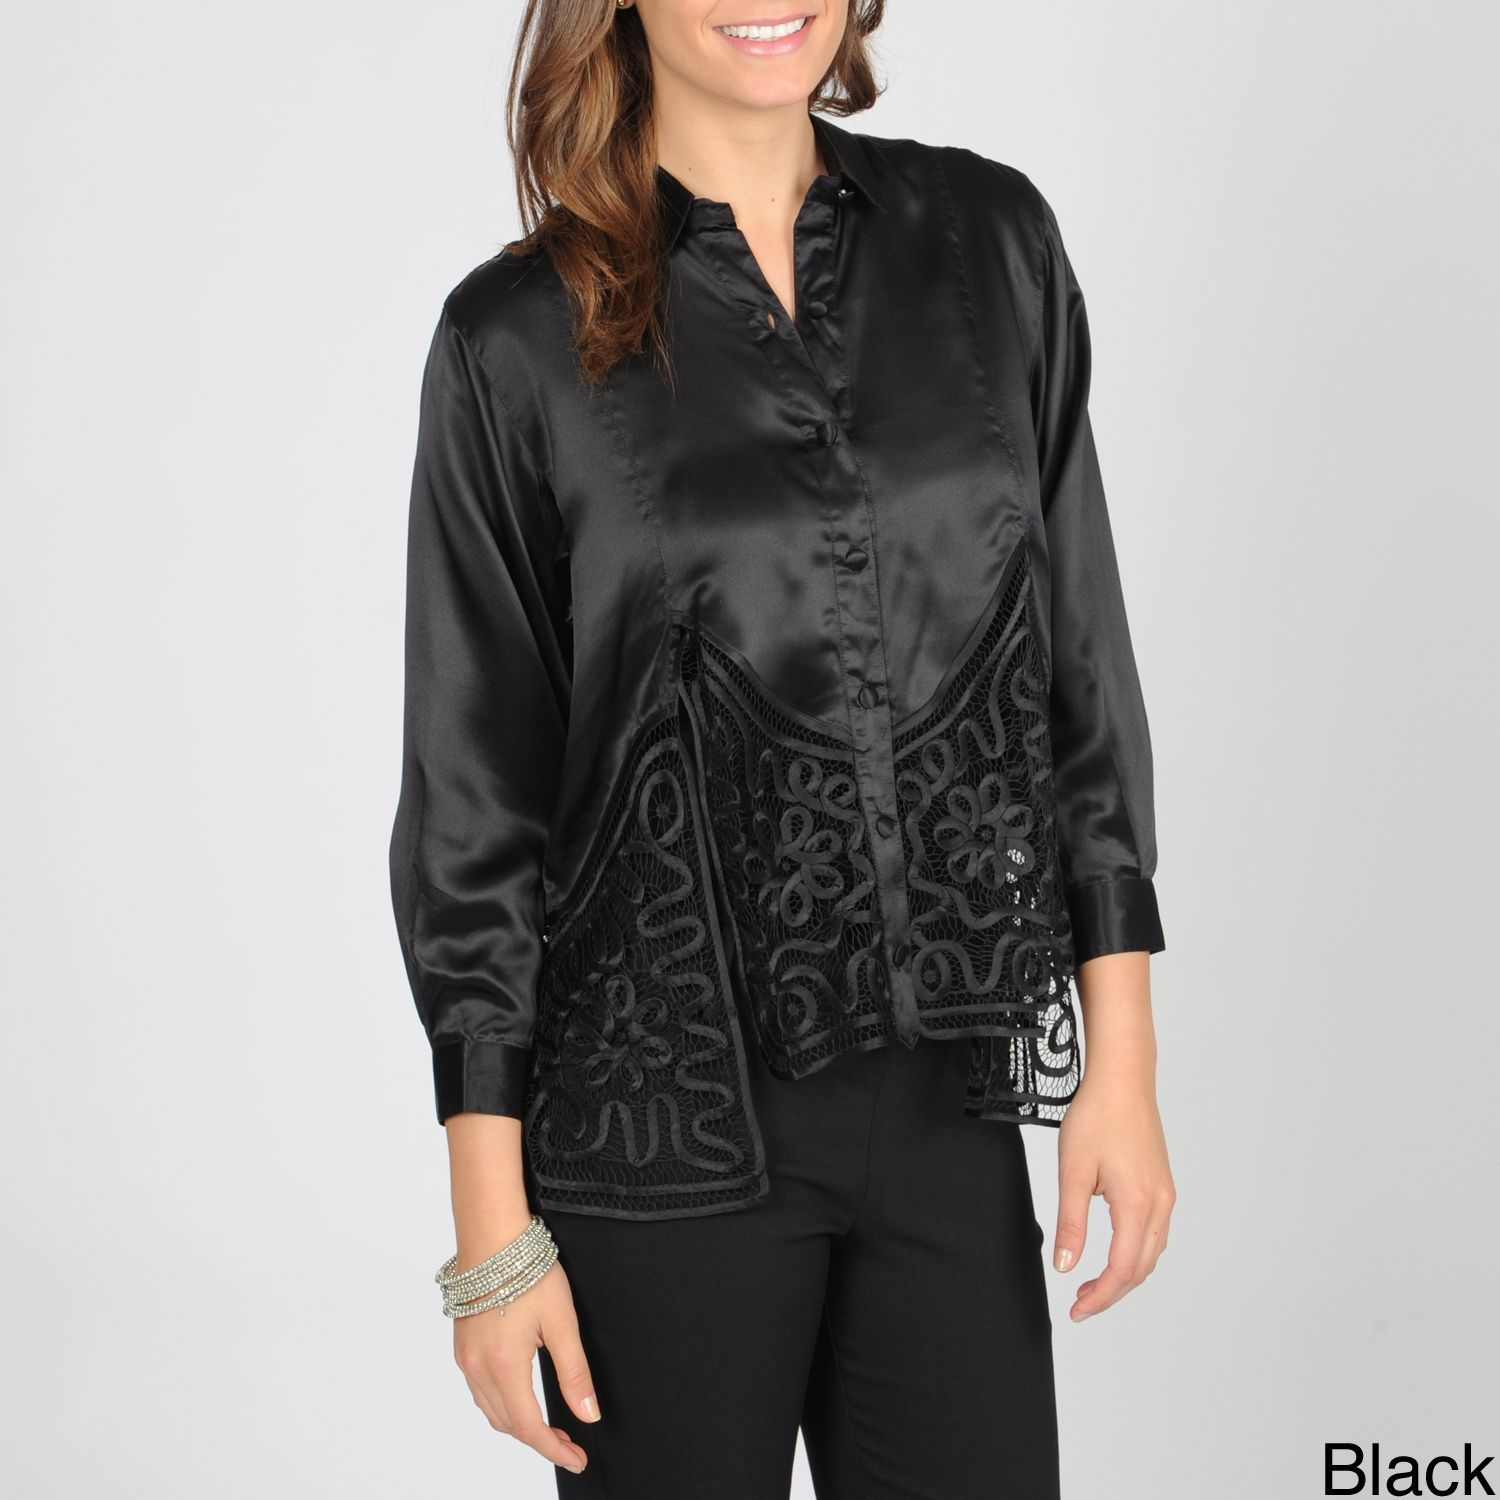 SoulMates Women's Button Down Top with Hand Crafted Detail